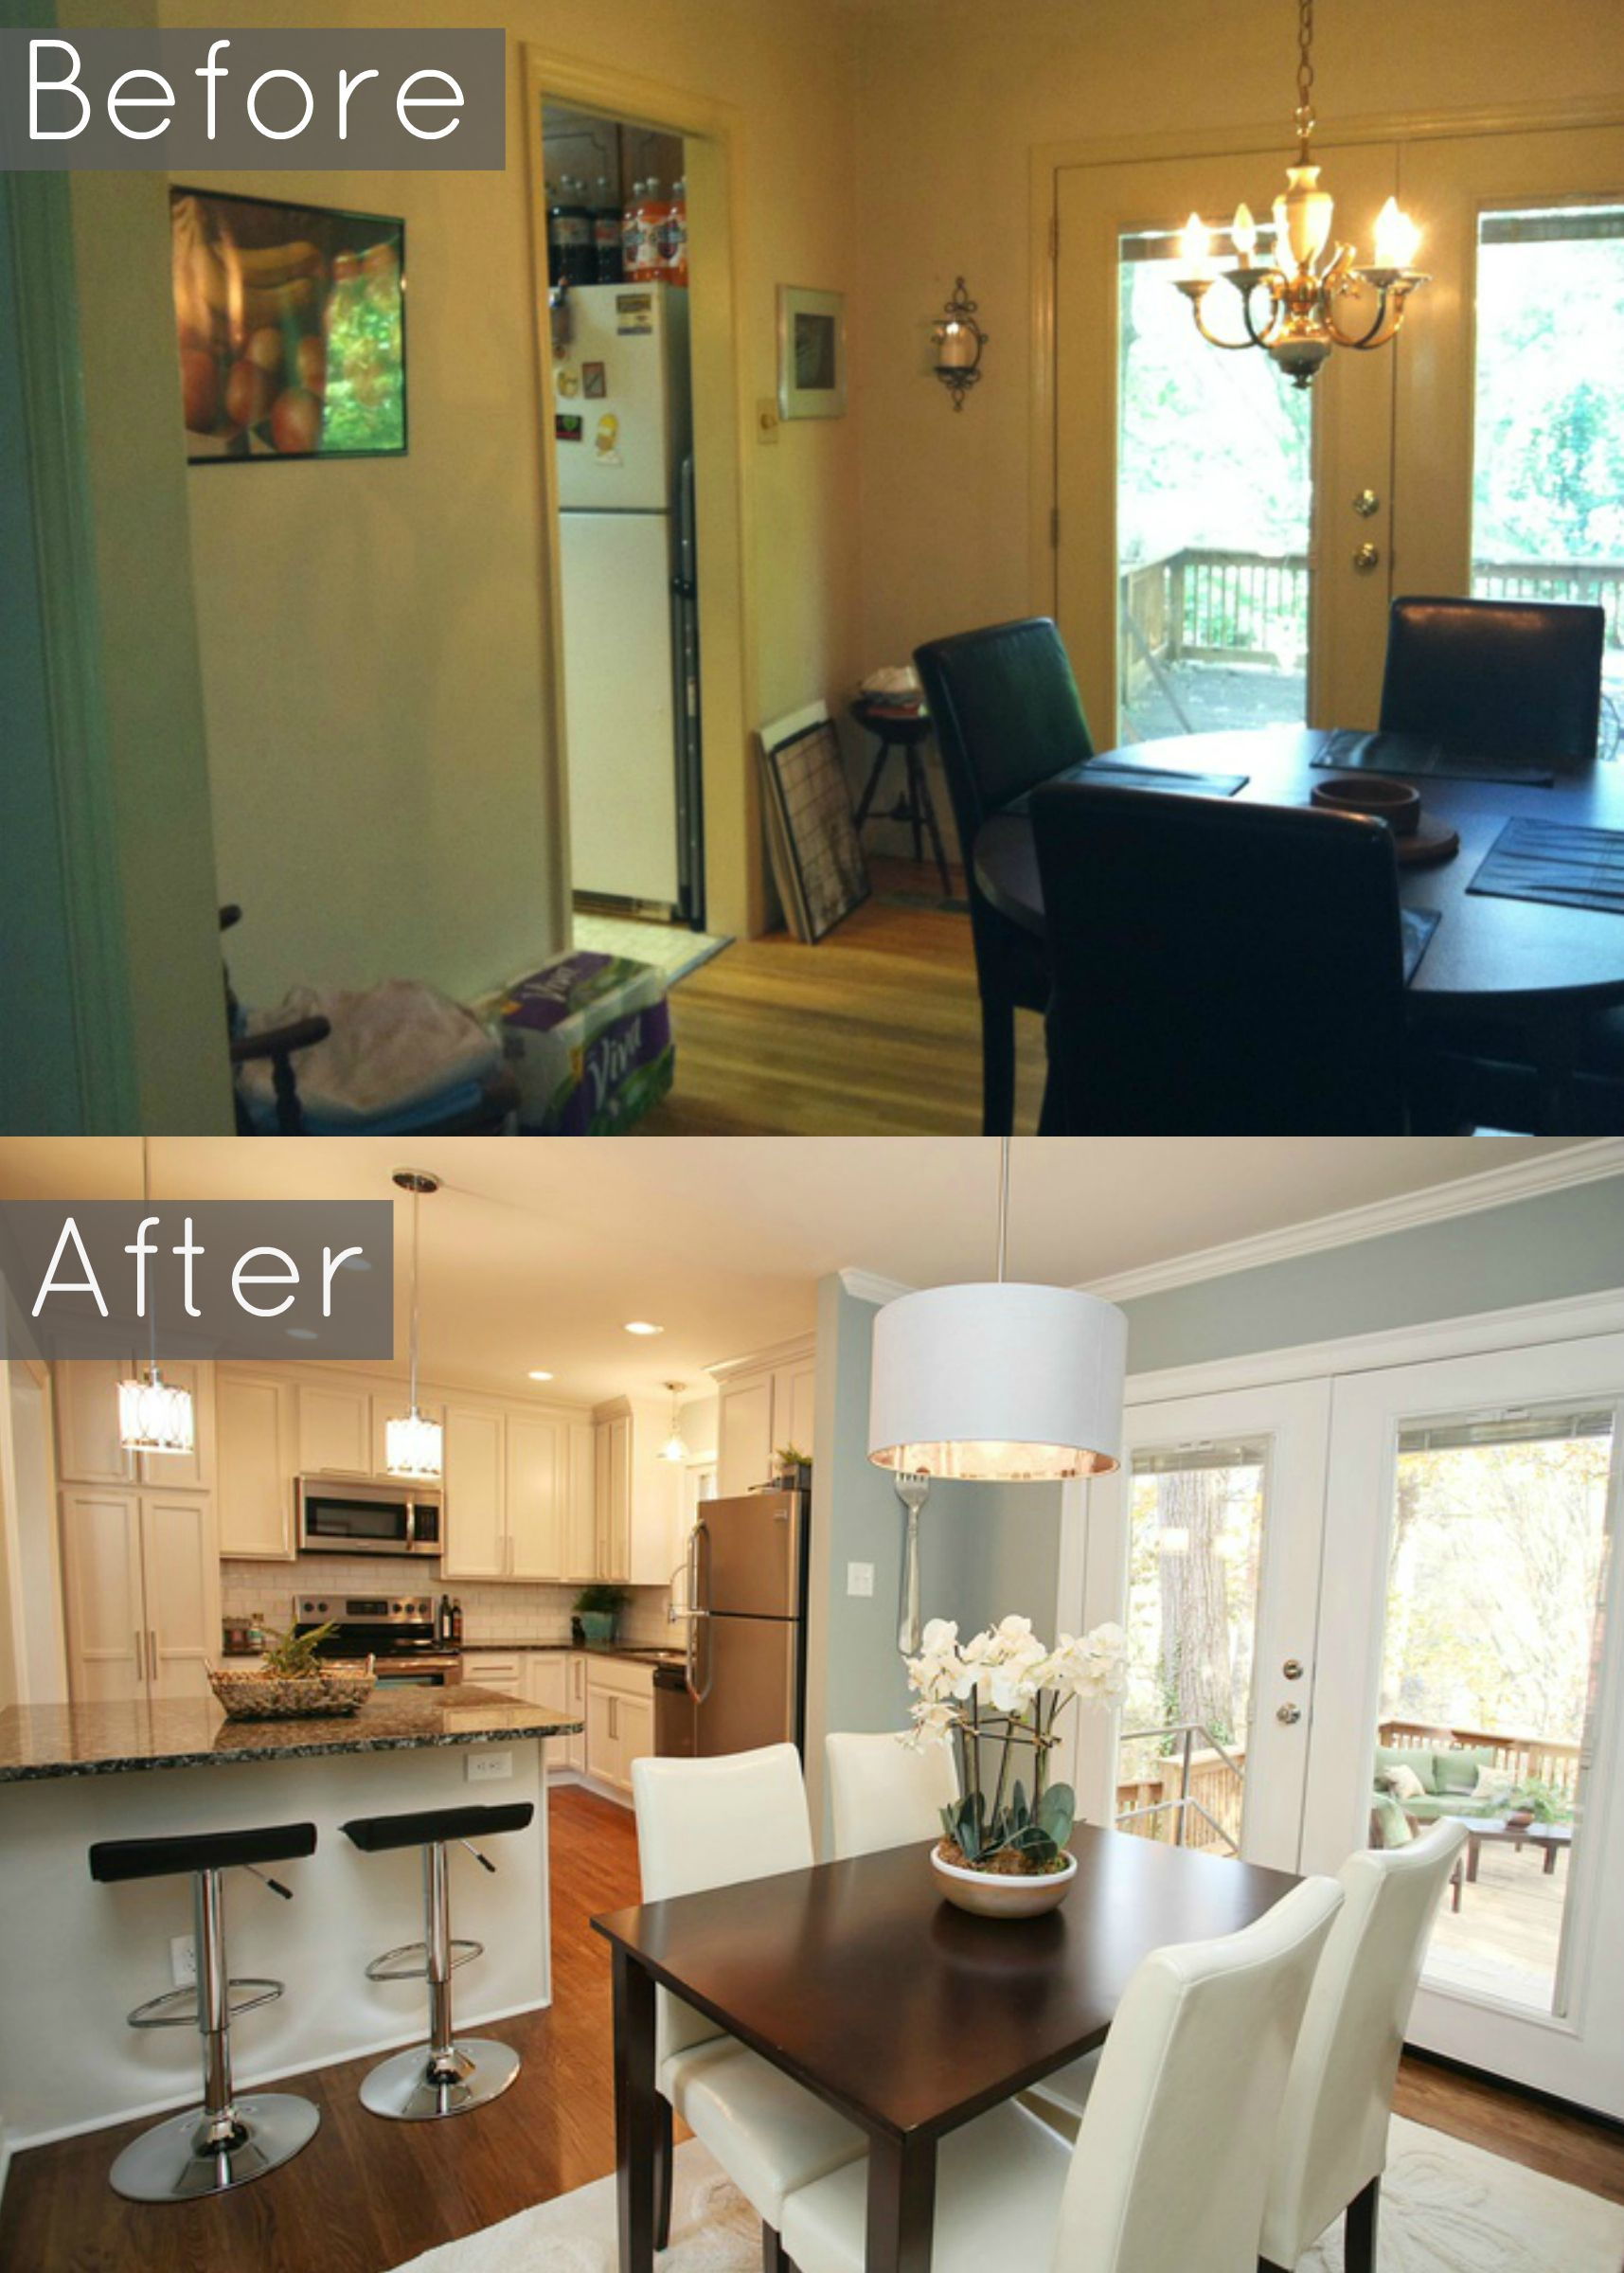 Before And After Kitchen Remodels Decor Glamorous Design Inspiration